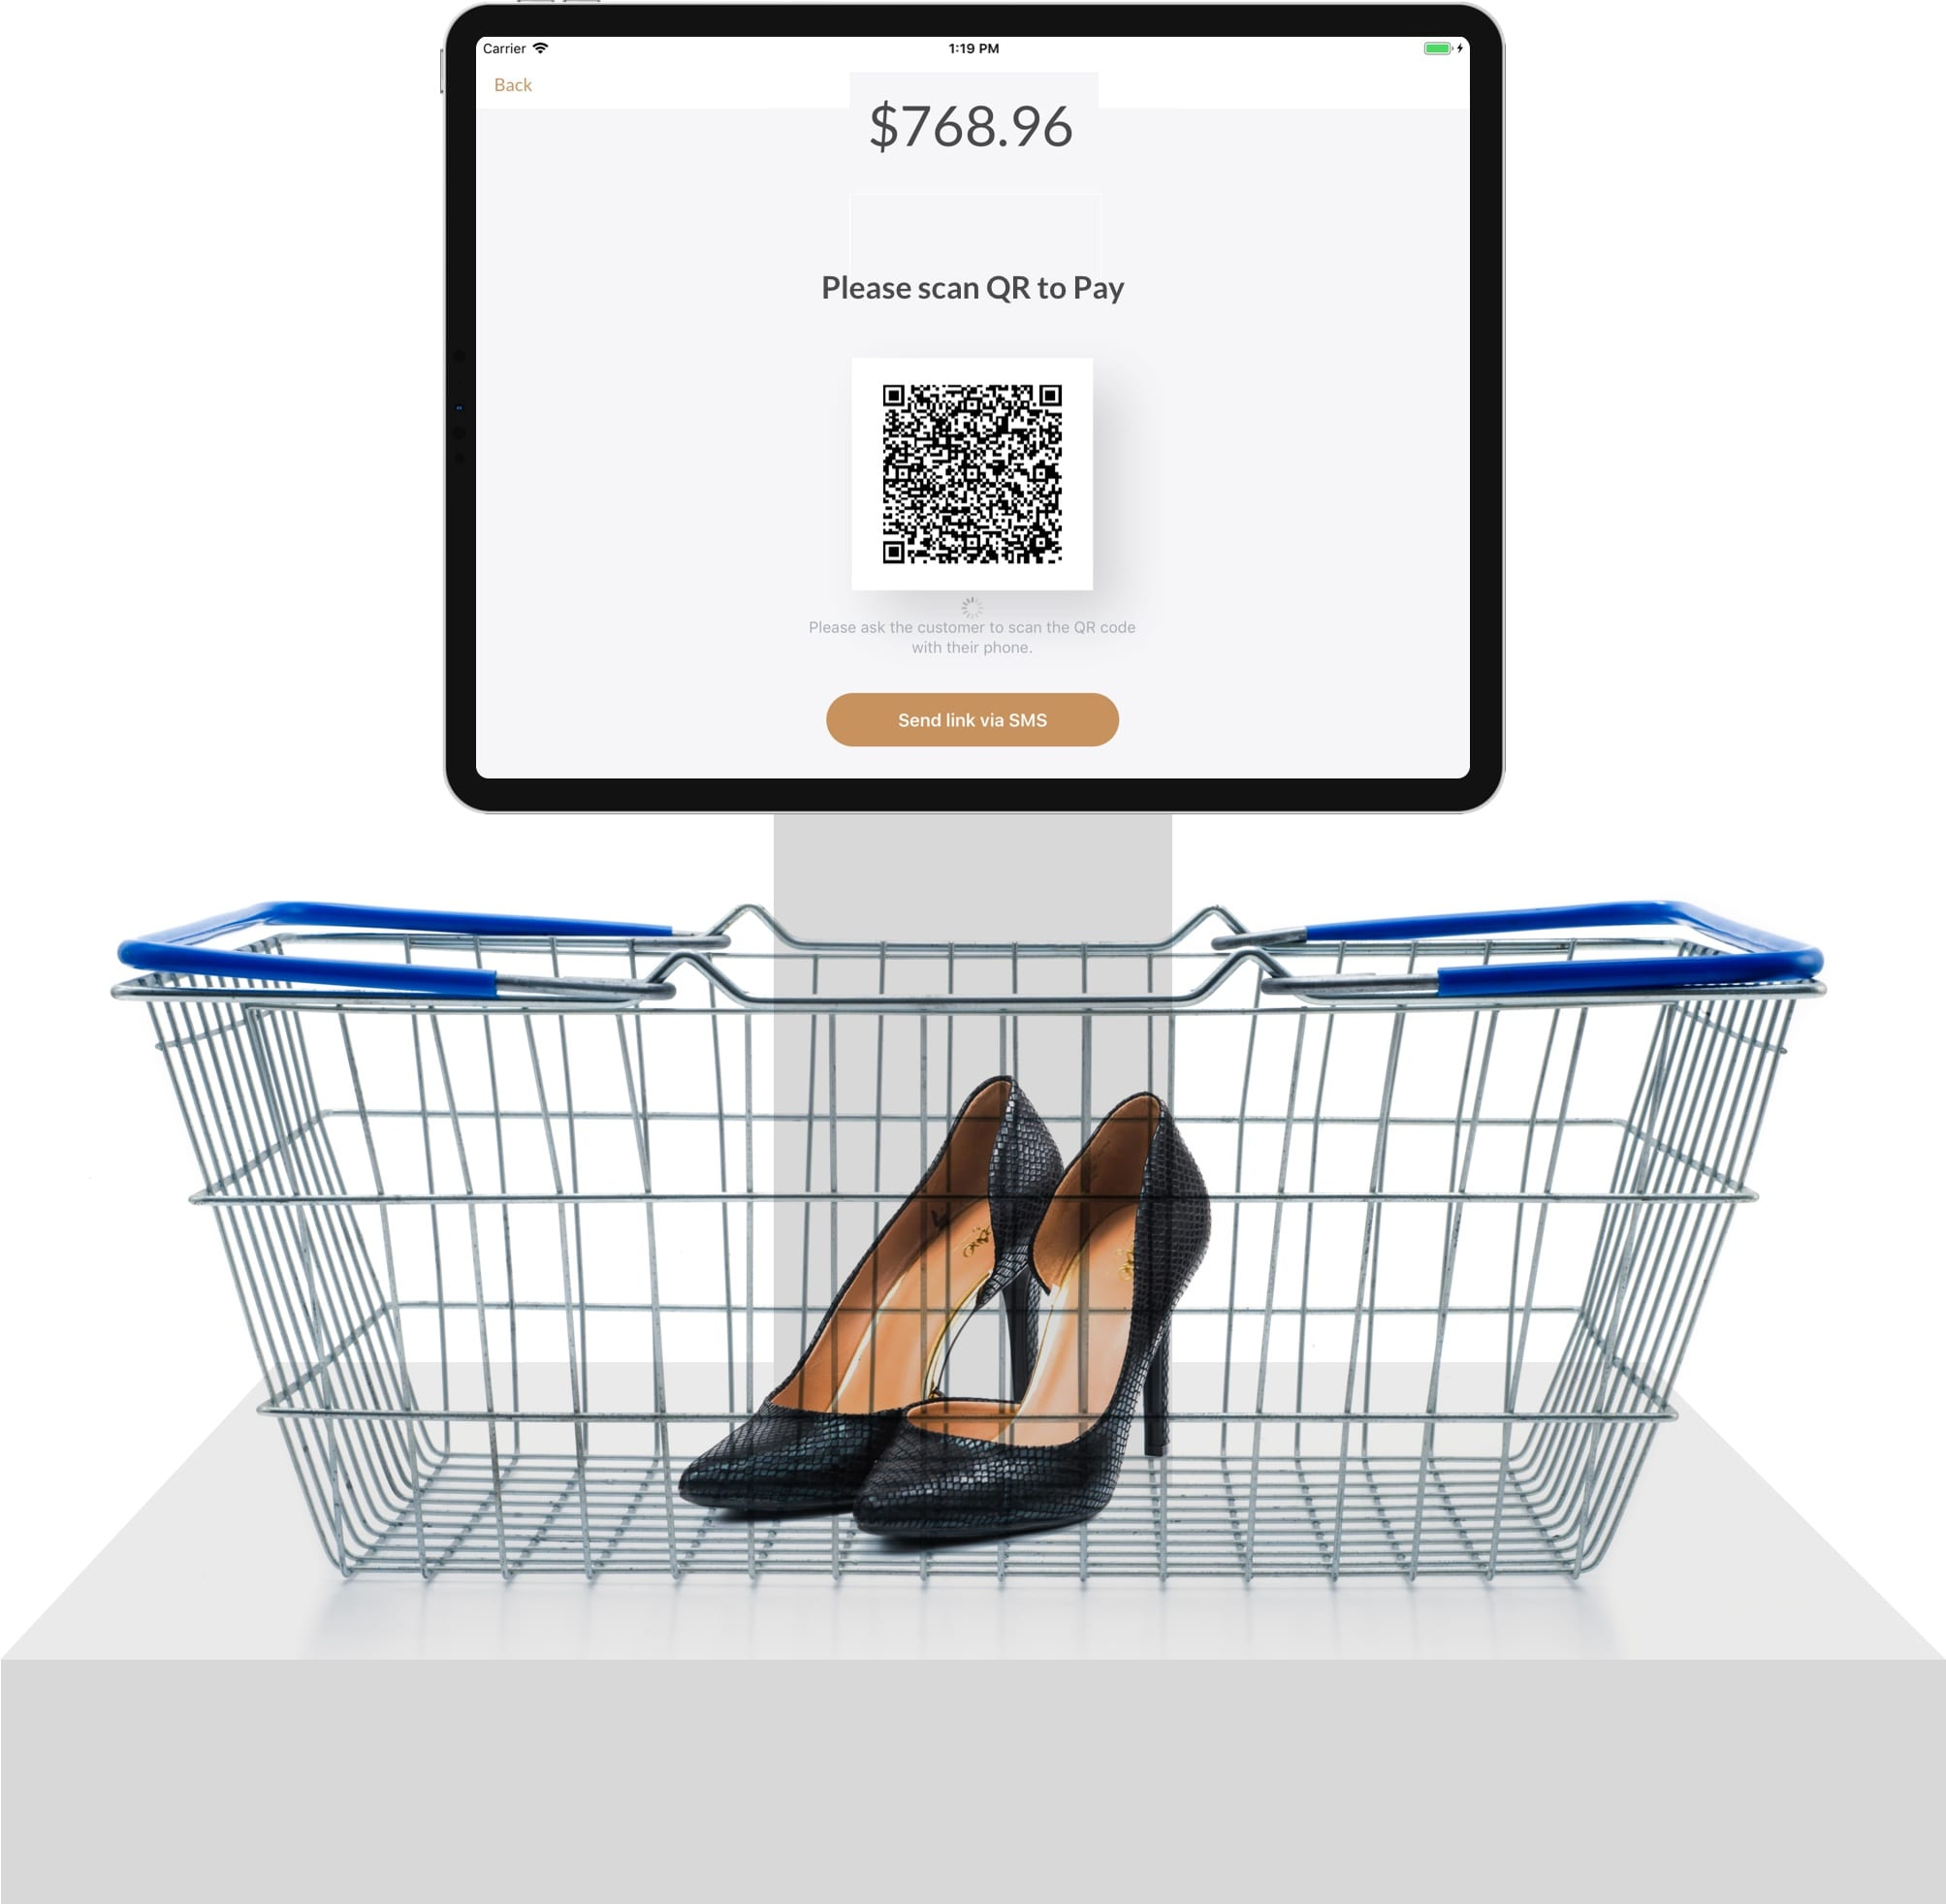 shoes on payment terminal with qr code